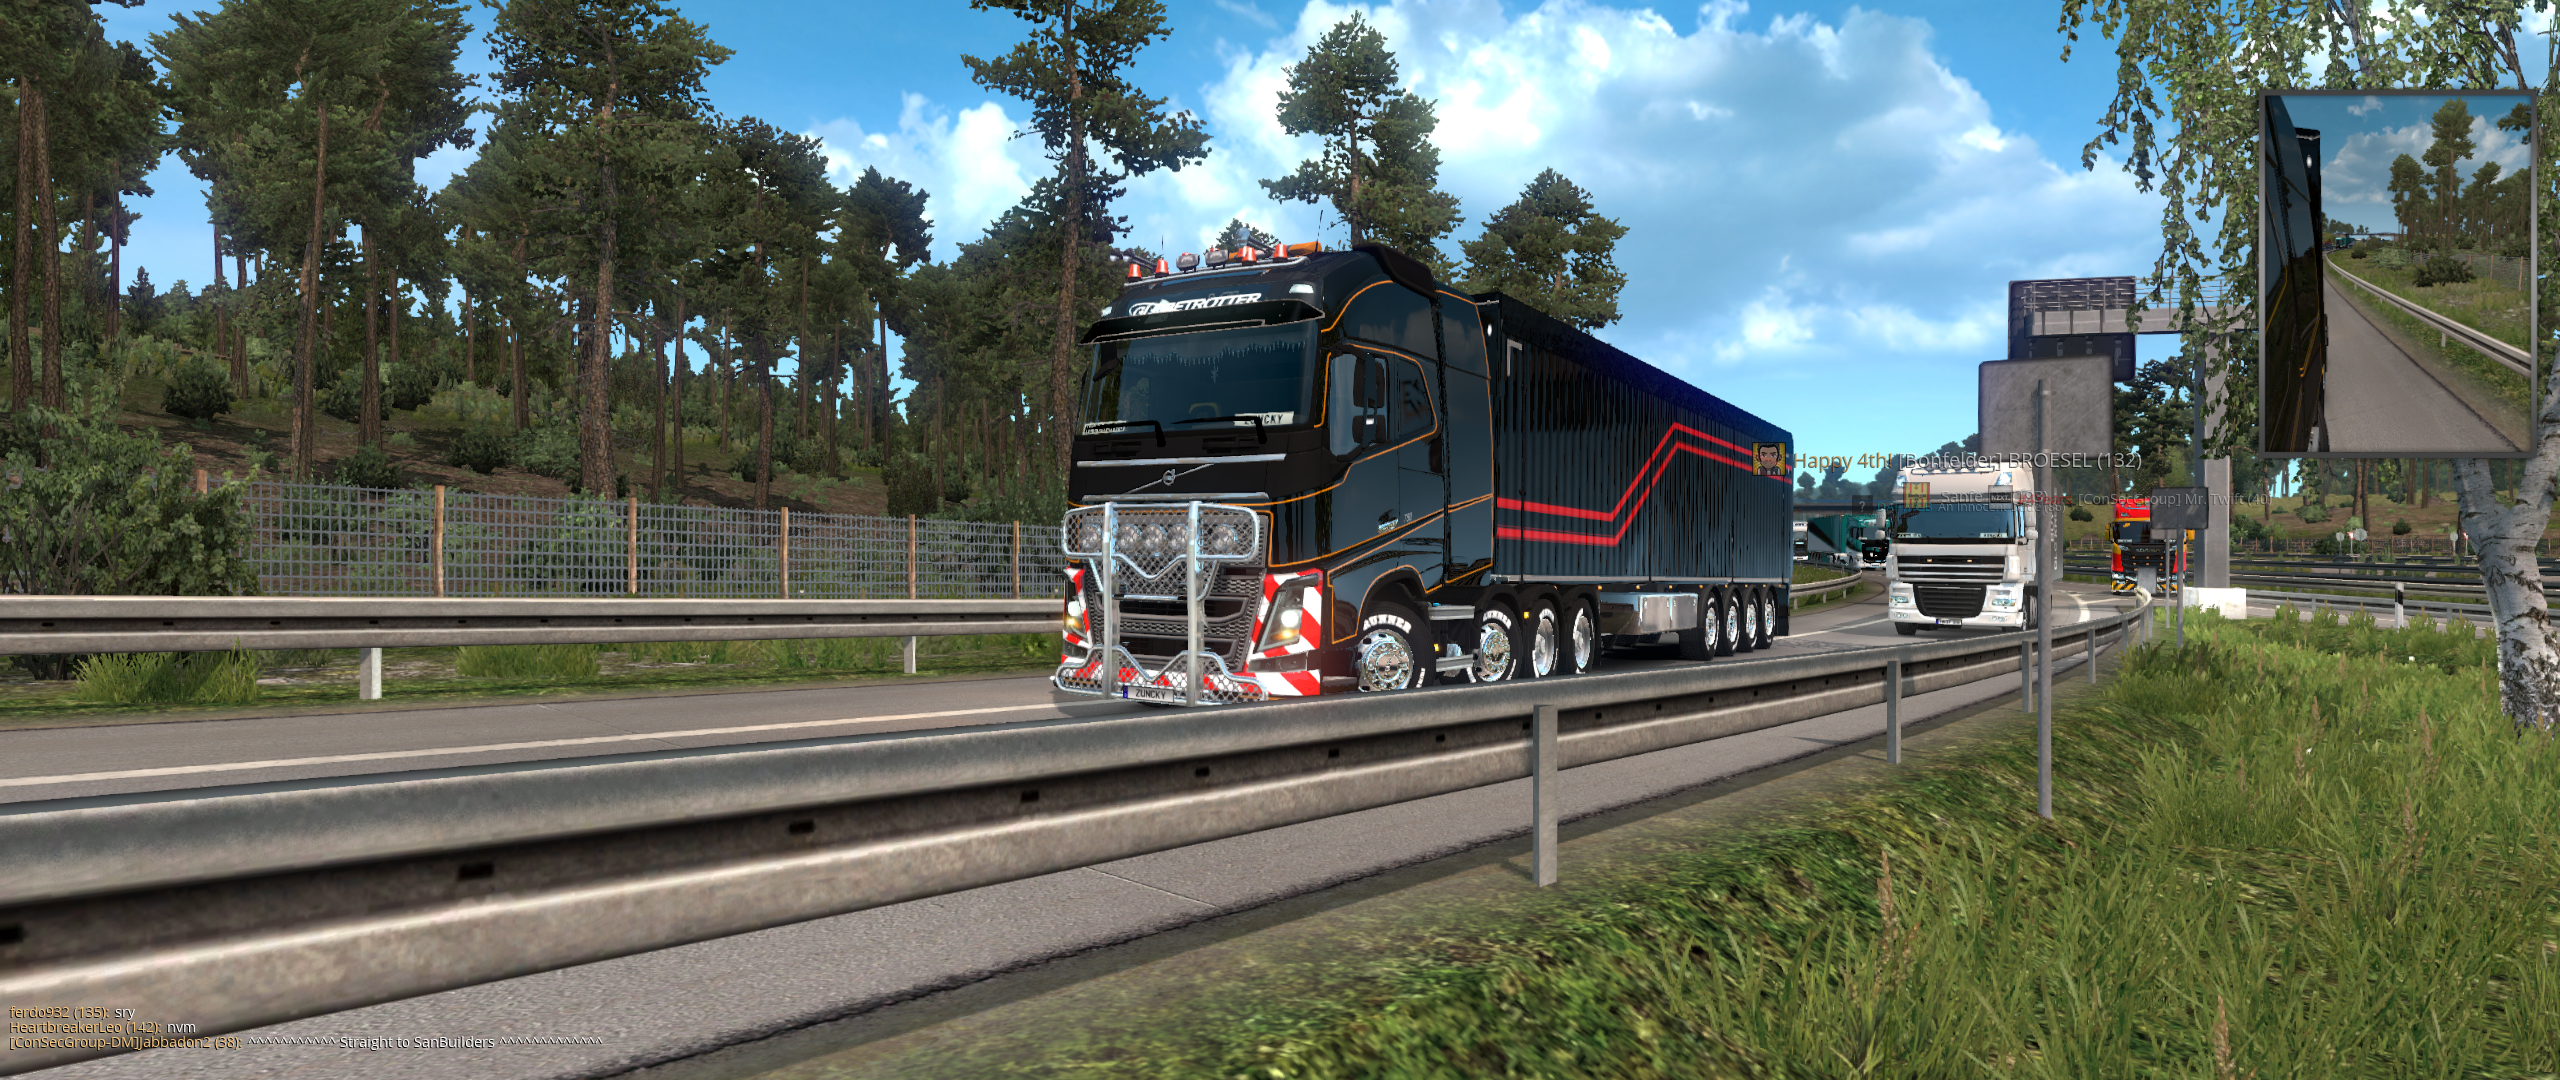 ets2_20190112_223120_00.png